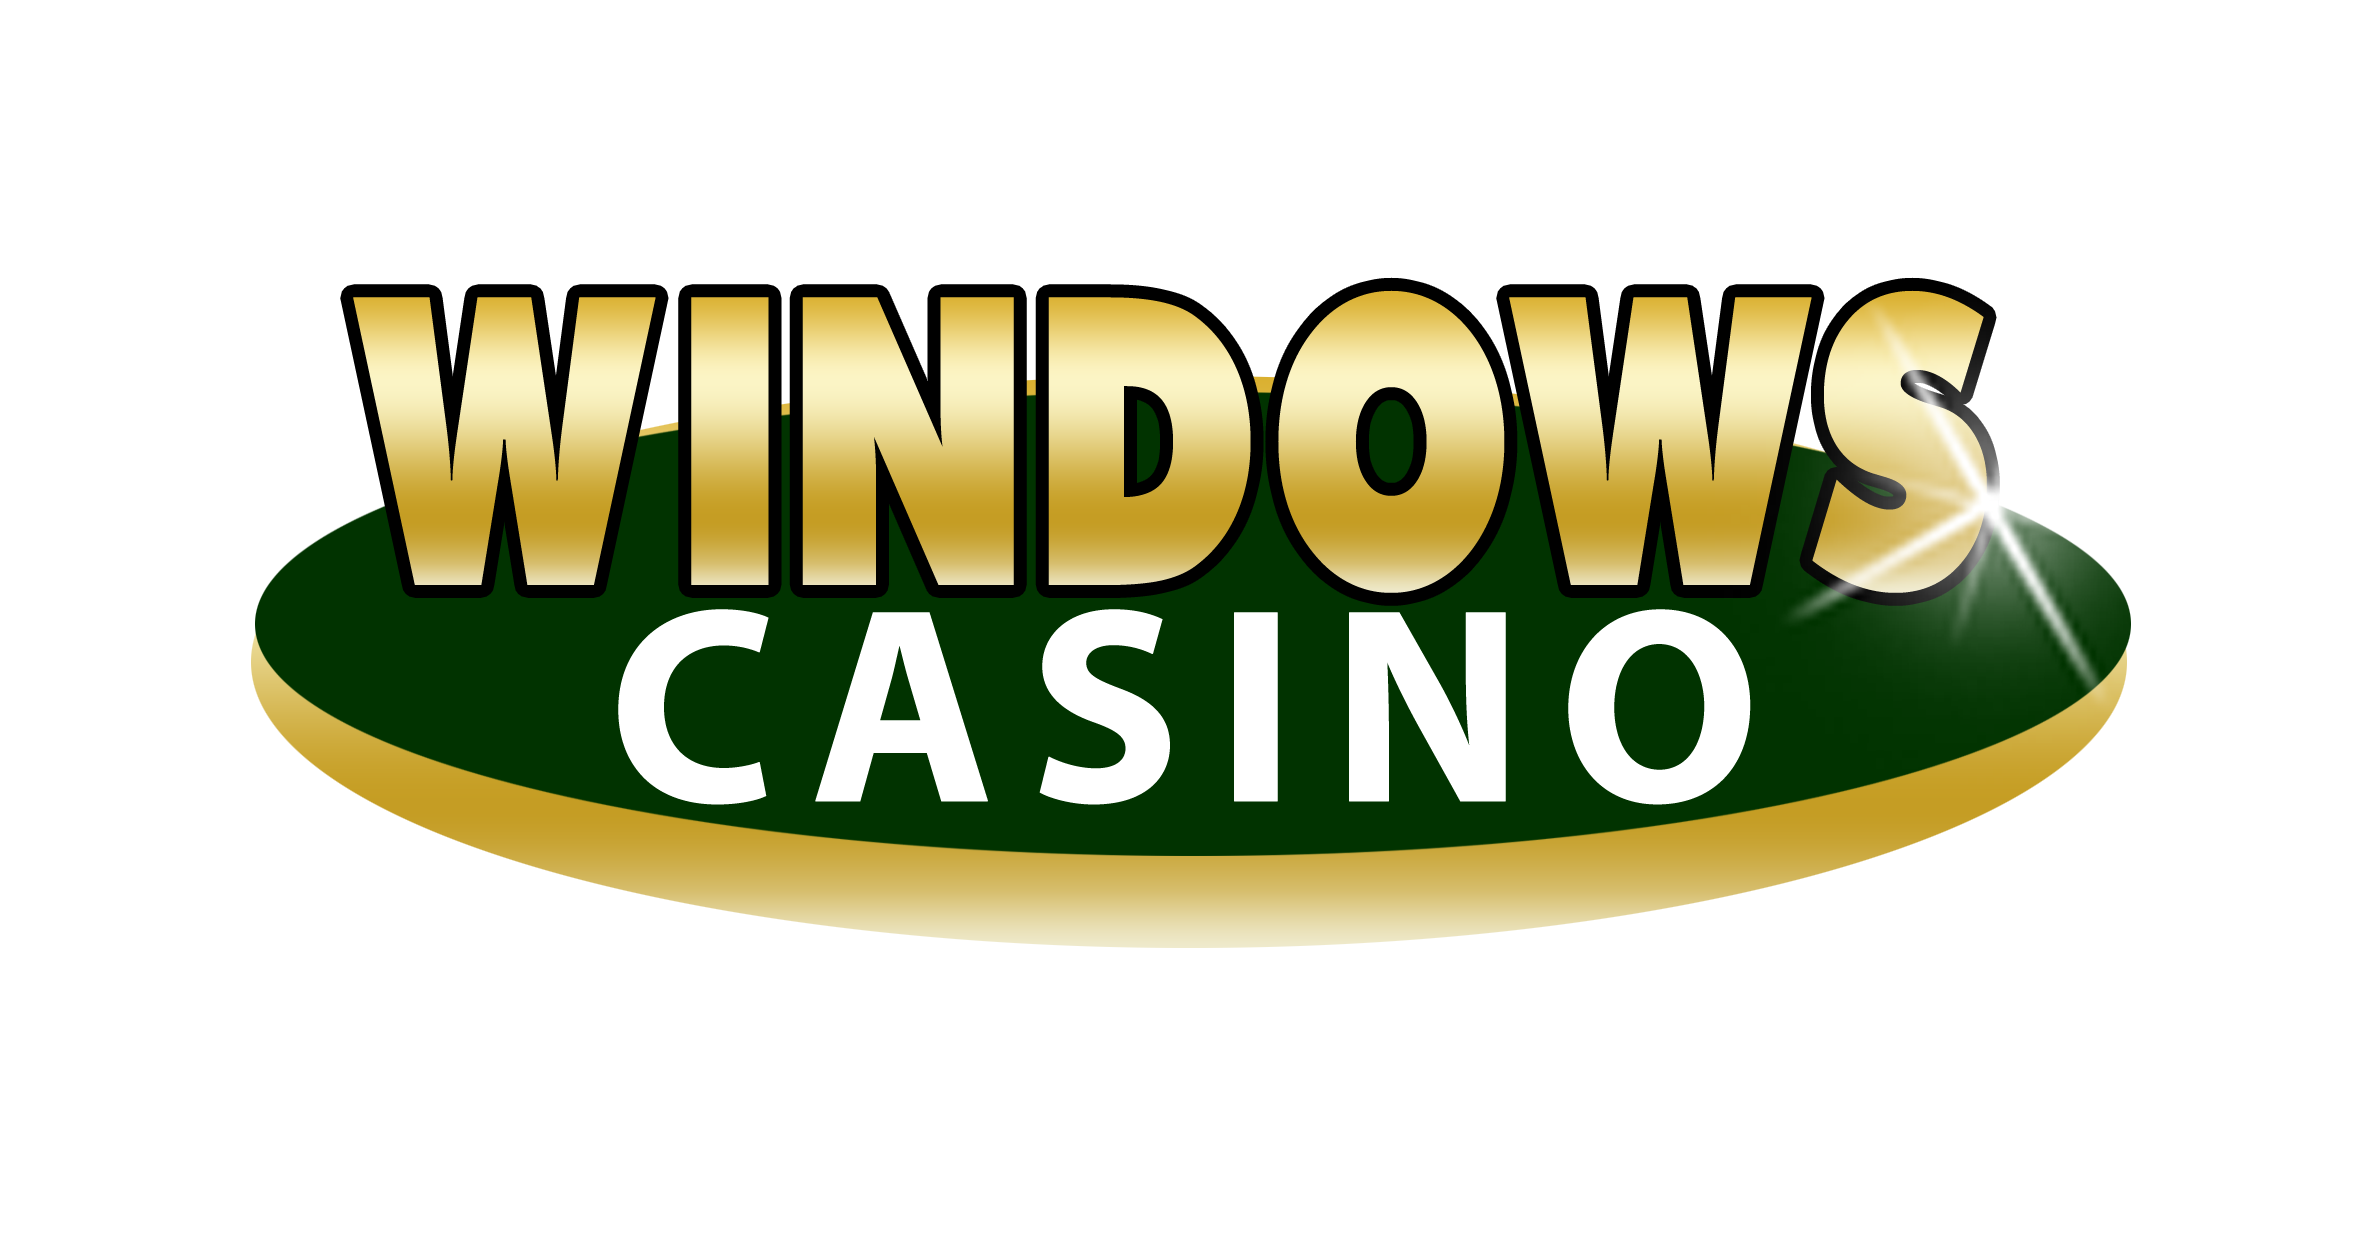 Windows Casino Big Wins